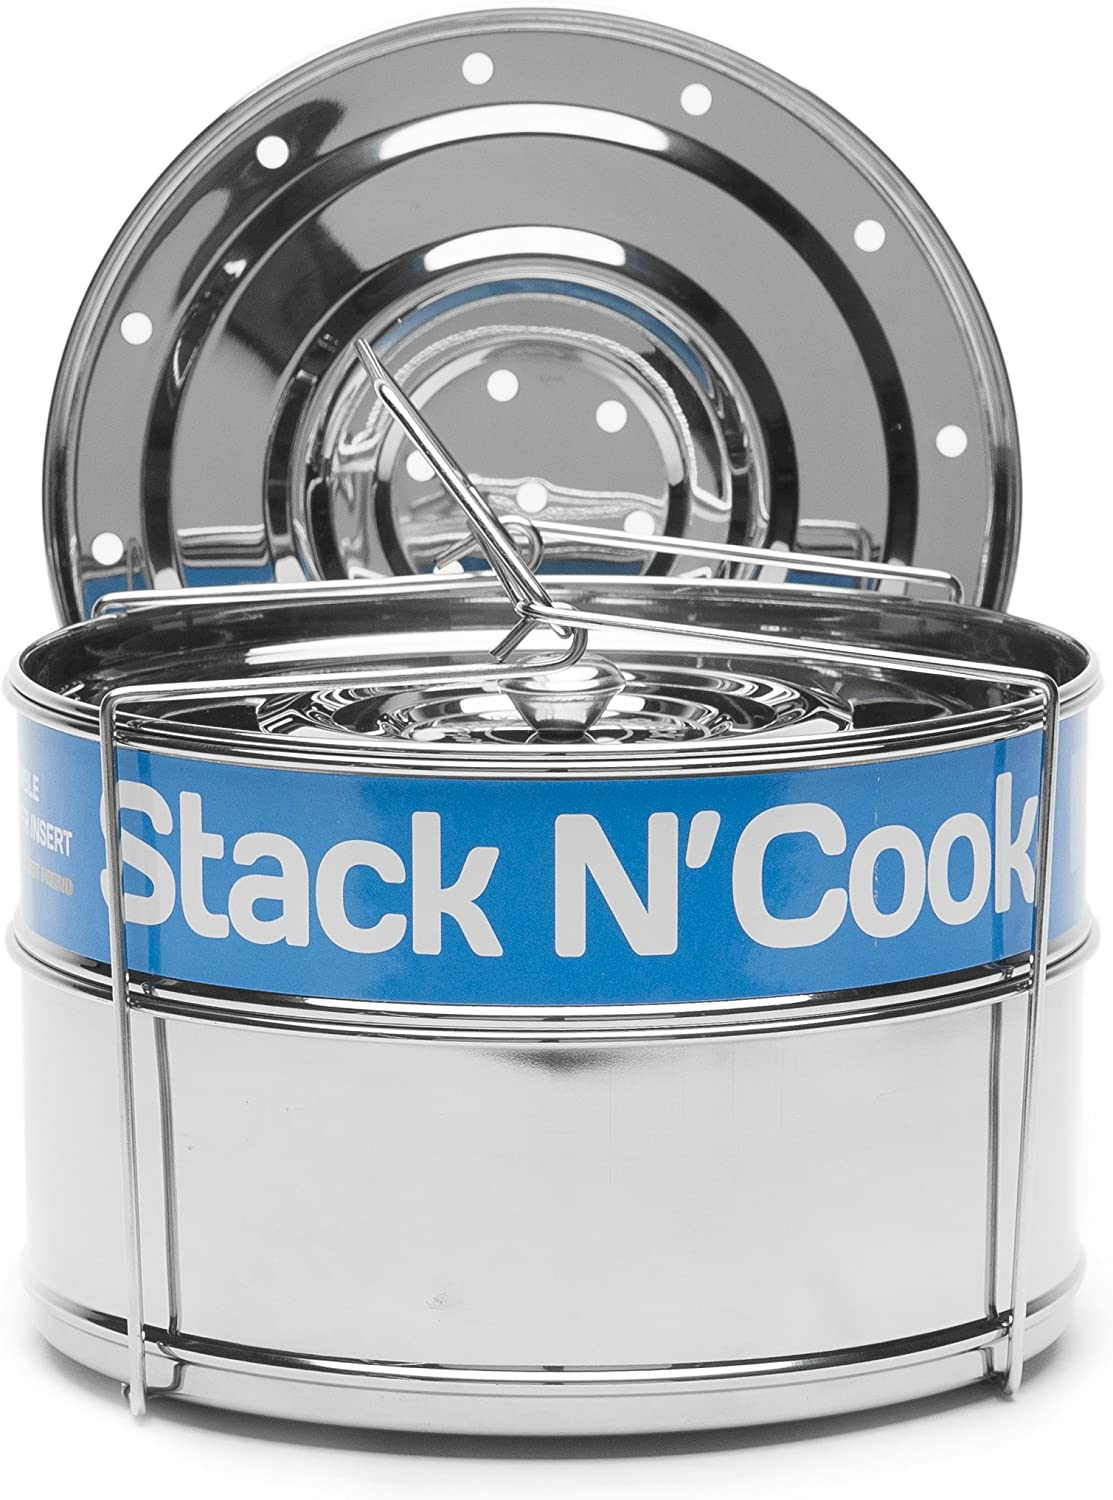 8 Qt Stack N' Cook Stackable Insert Pans with Sling - Instant Pot Accessories for 8 Qt Baking, Casseroles & Lasagna Pans, Food Steamer - Pressure Cooker, Pot in Pot Accessories - Interchangeable Lid